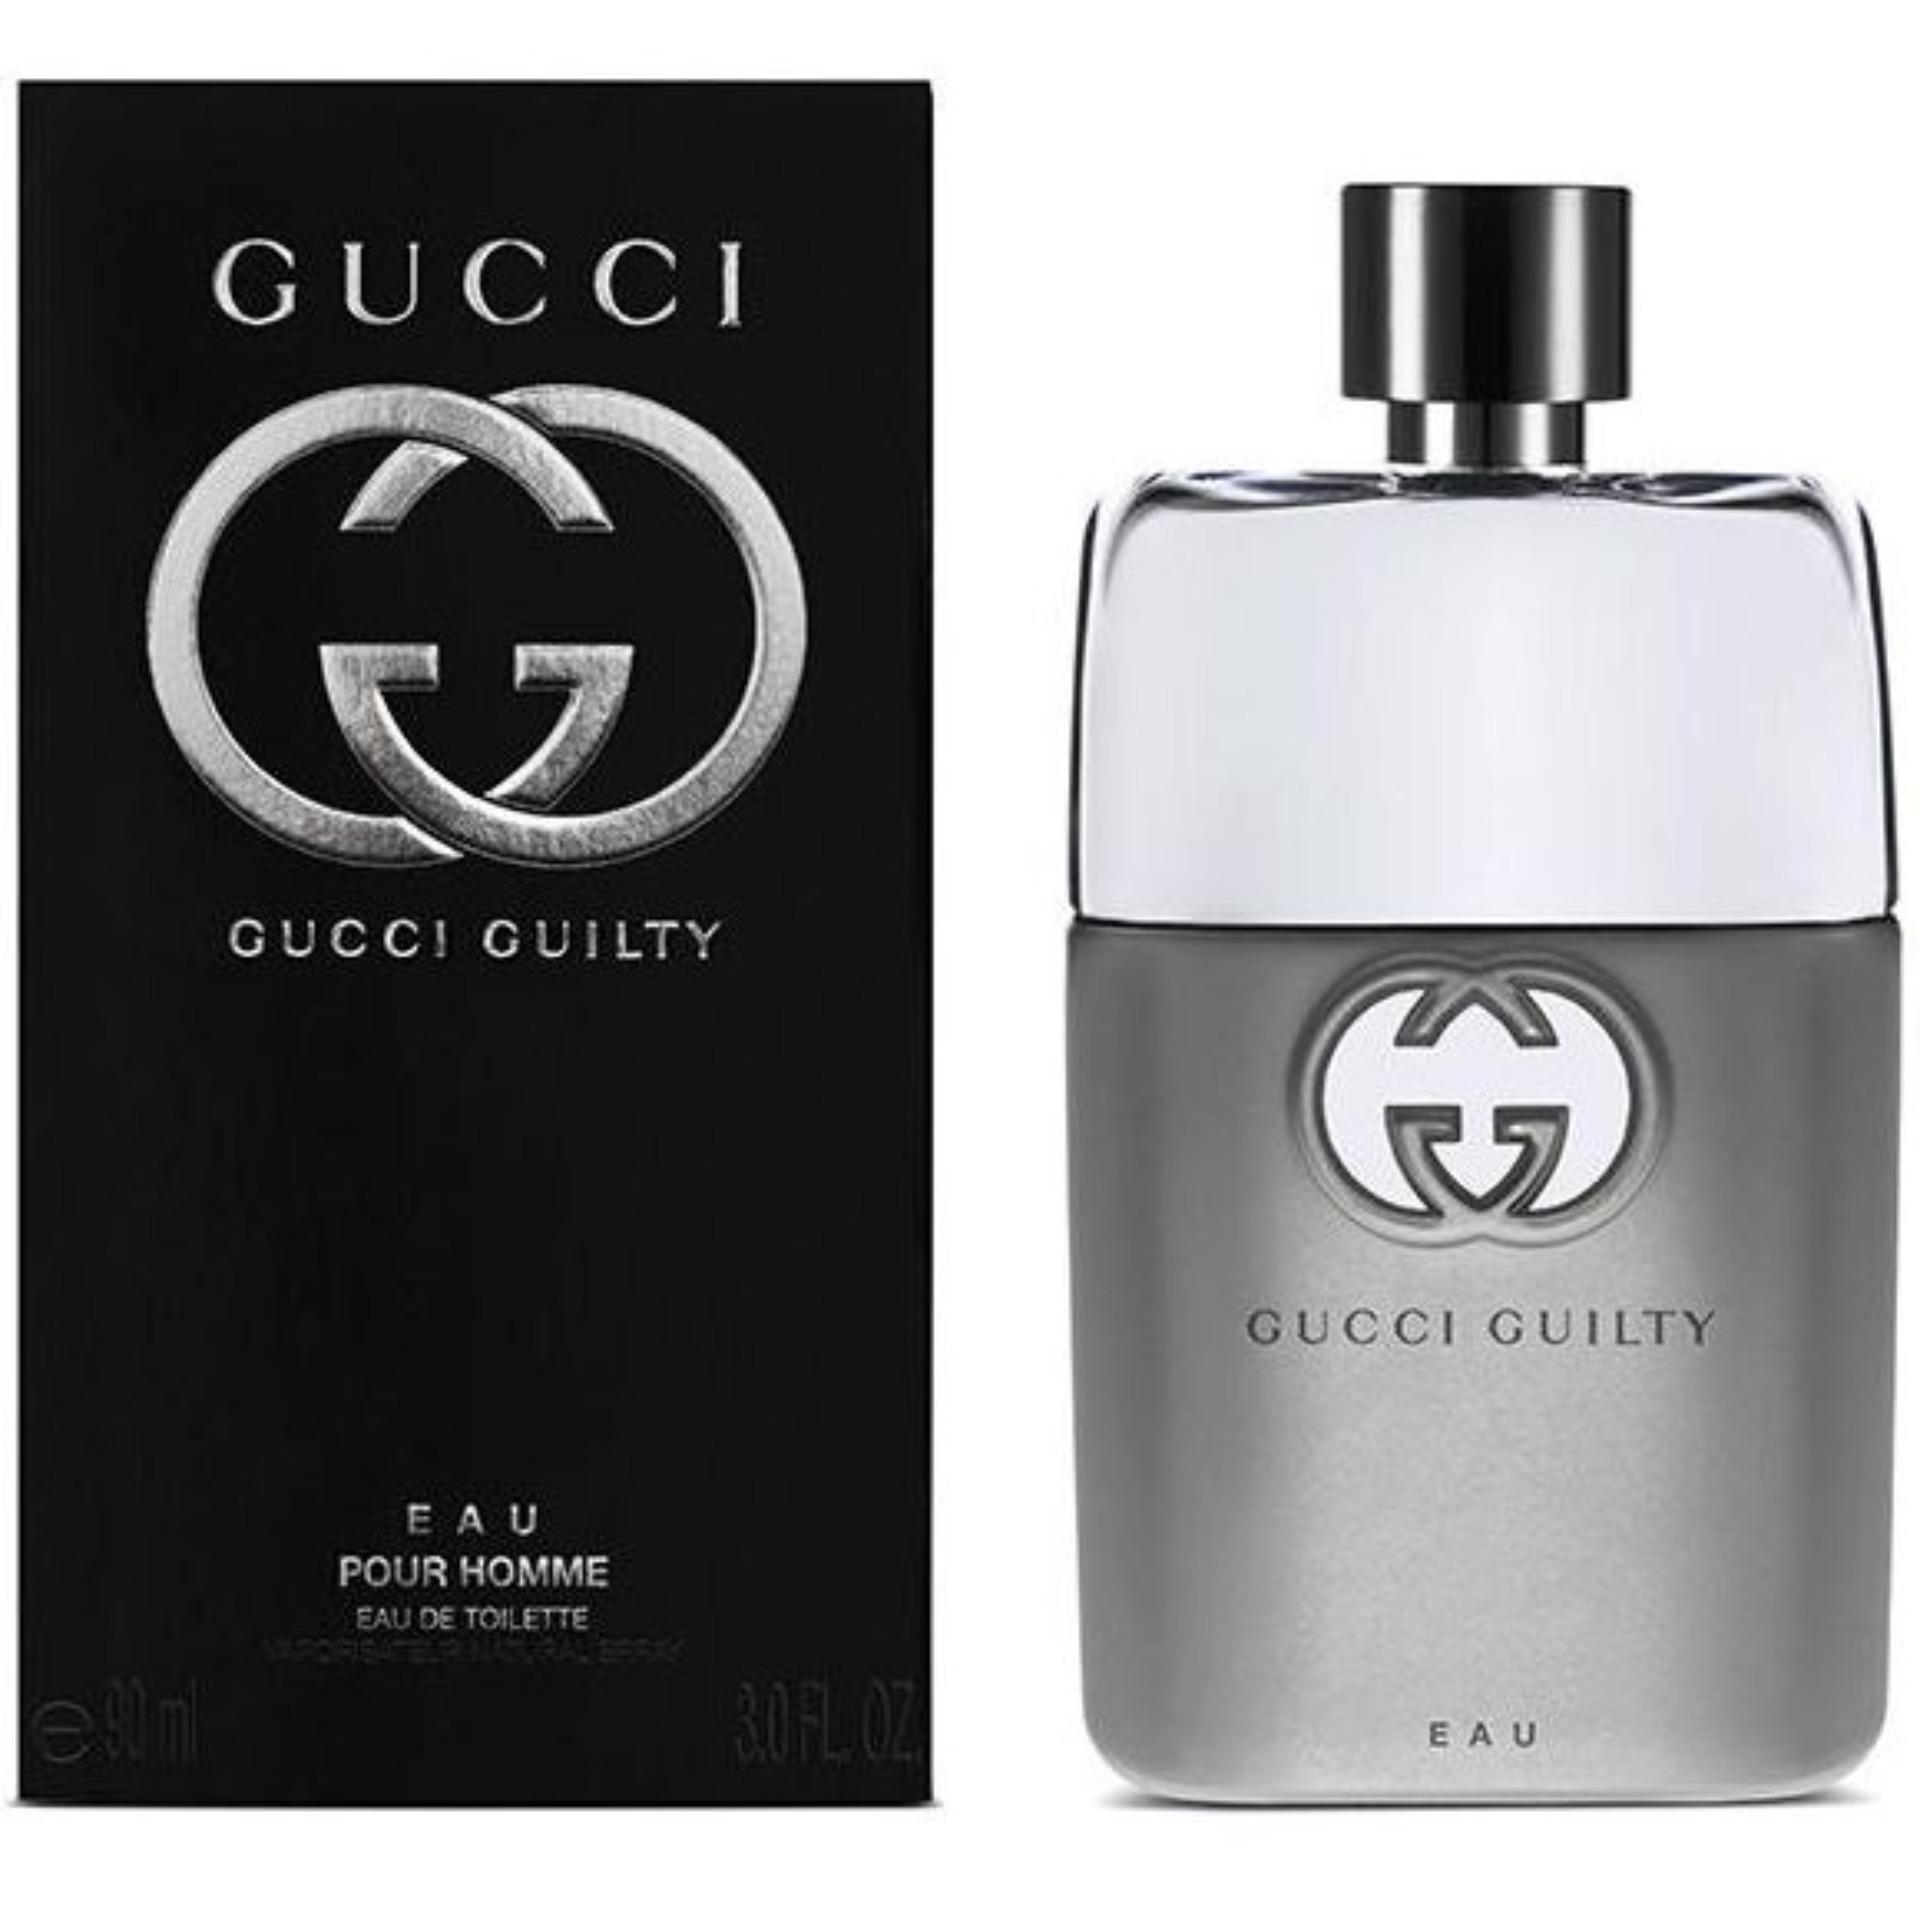 Gucci Fragrances Philippines - Gucci Mens and Womens Fragrance for ... 90b81dc4bb